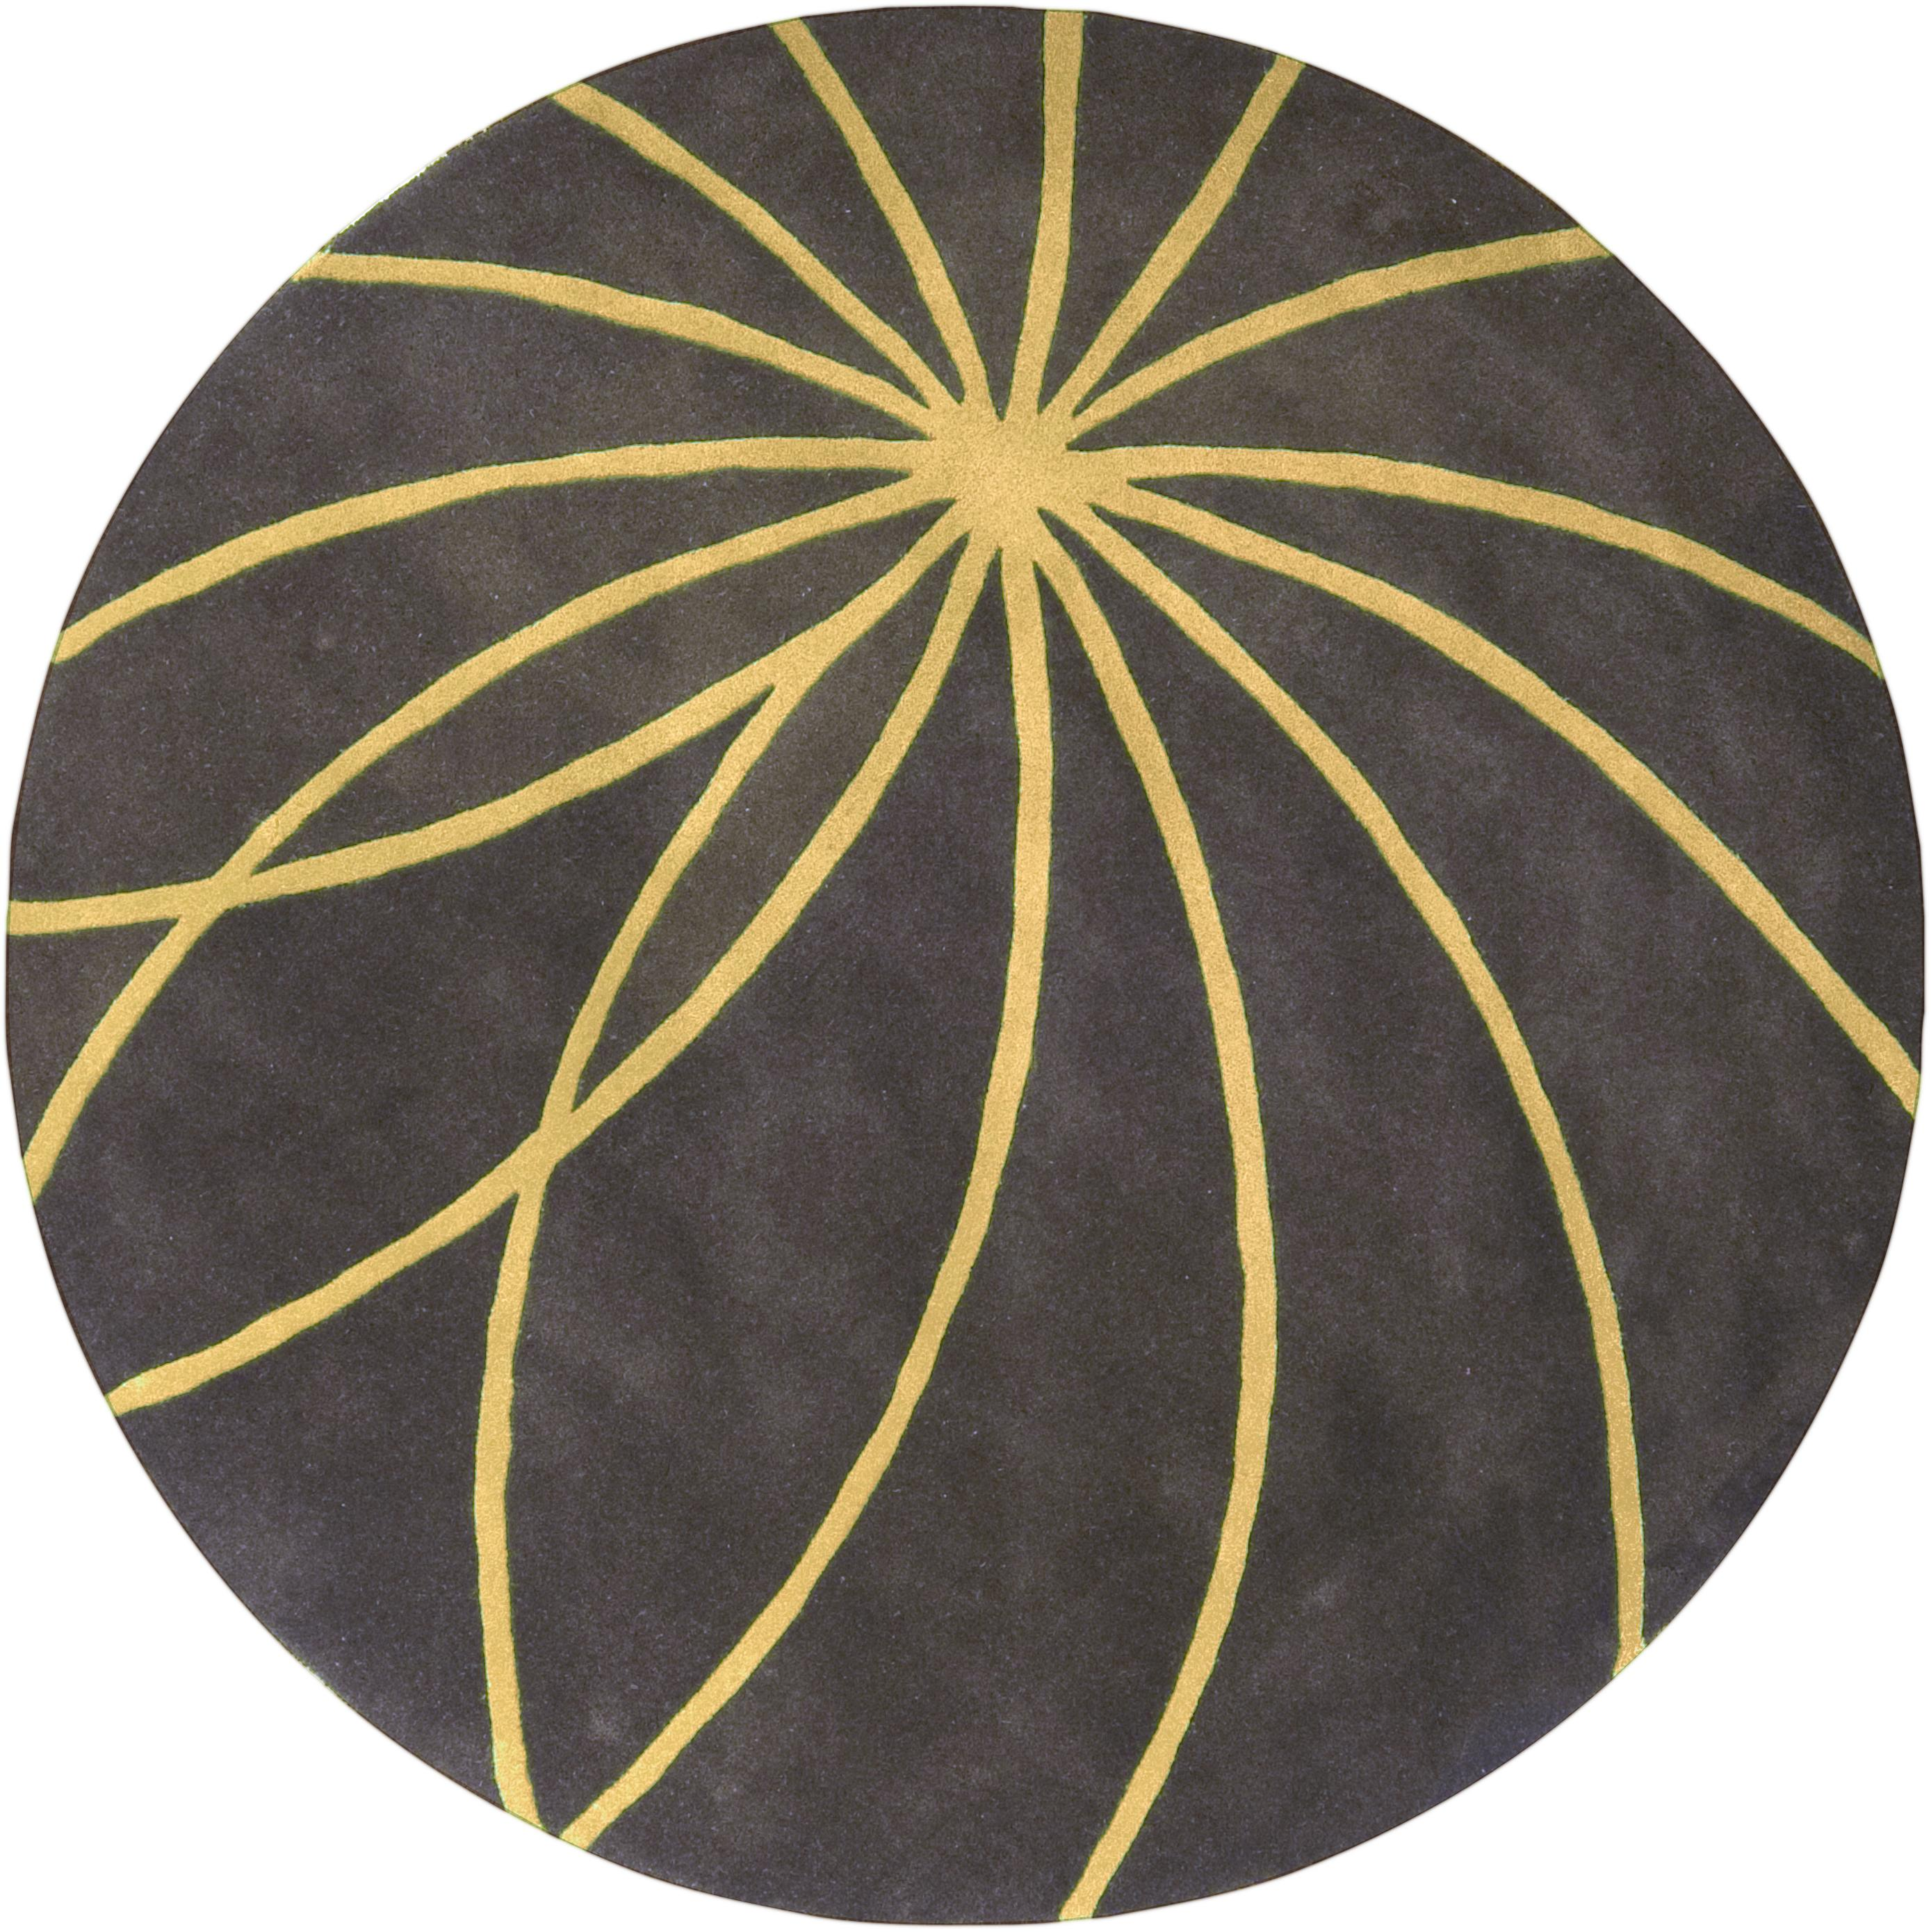 Surya Rugs Forum 4' Round - Item Number: FM7181-4RD